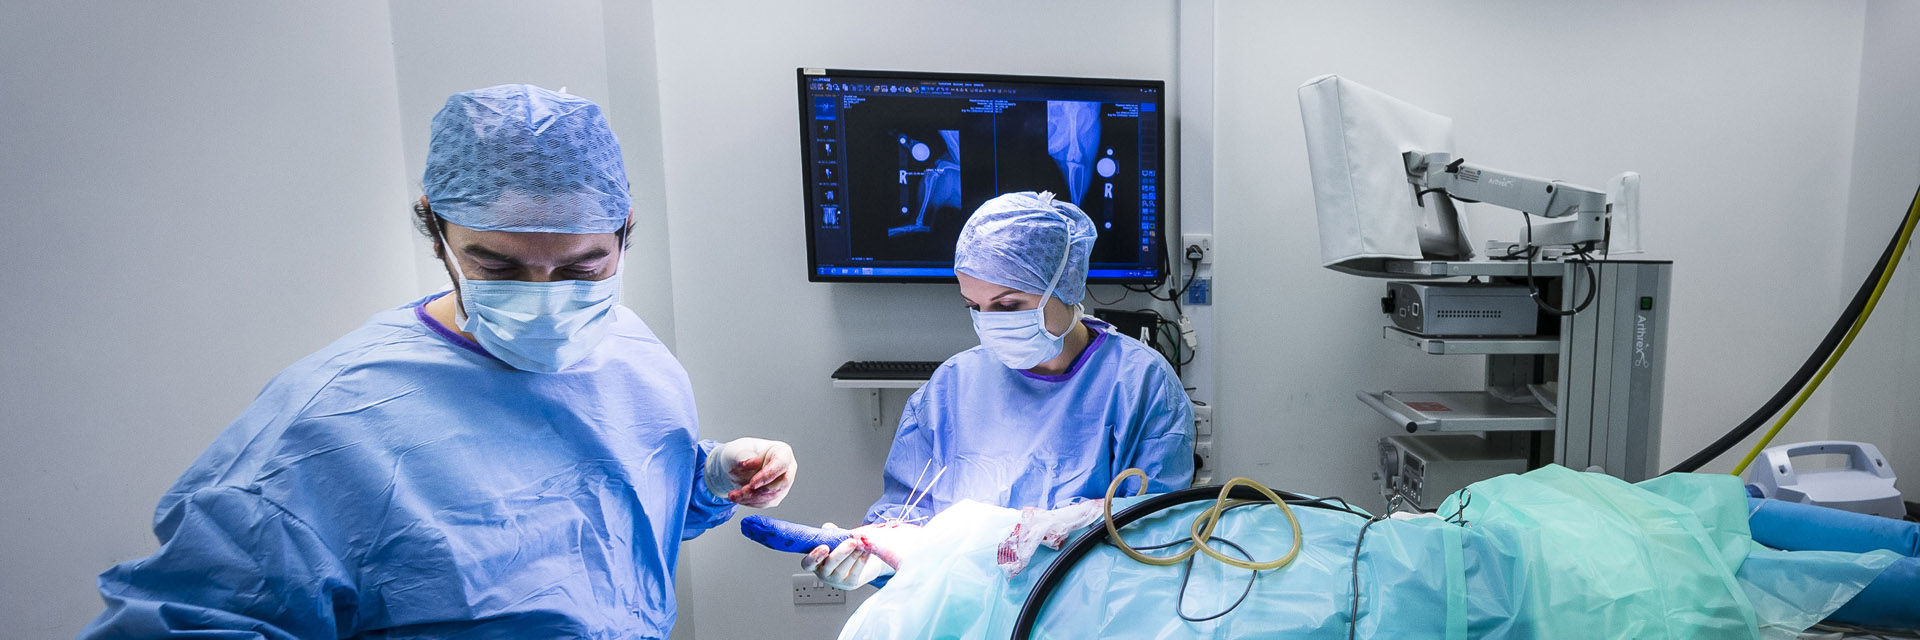 Dr Miguel Solano in surgery at Fitzpatrick Referrals.